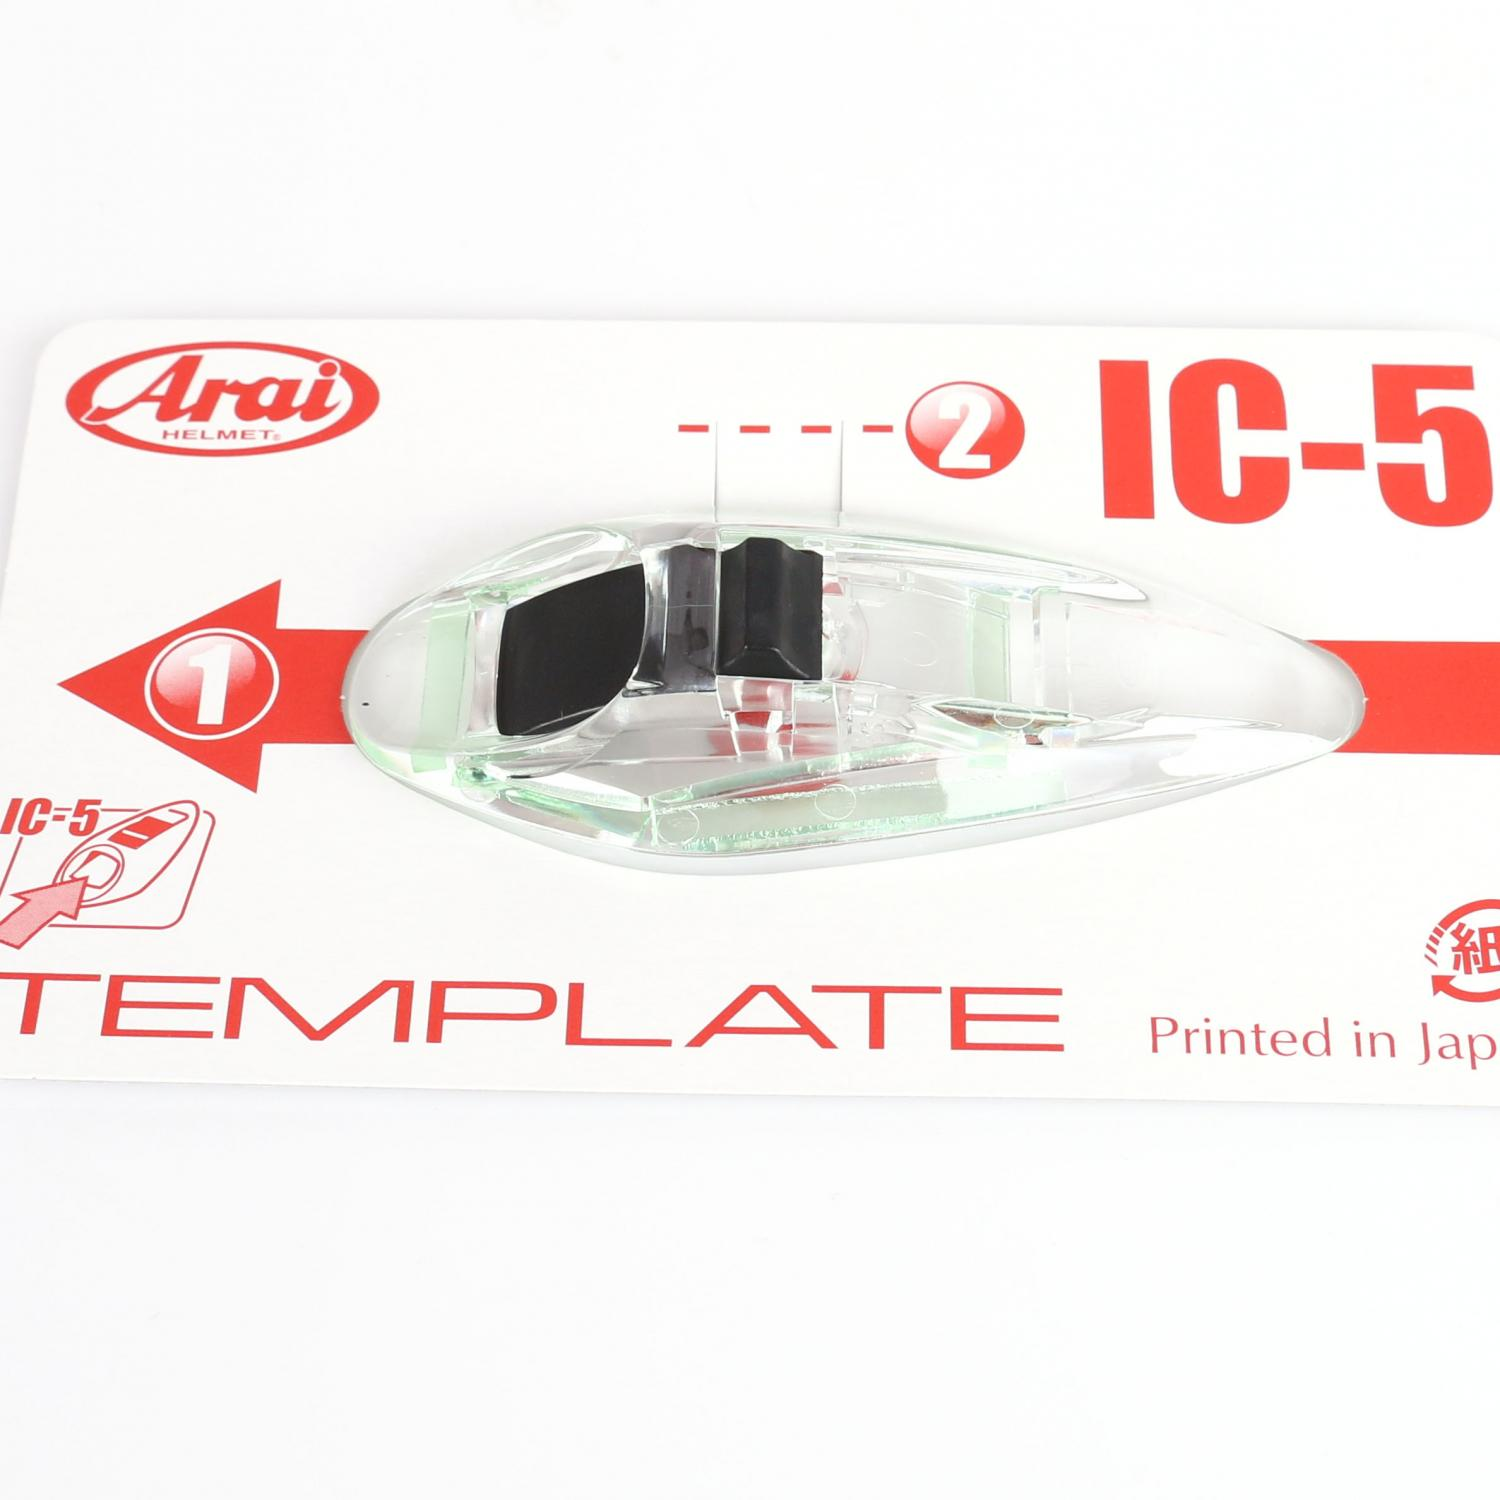 IC DUCT-5, Transparent